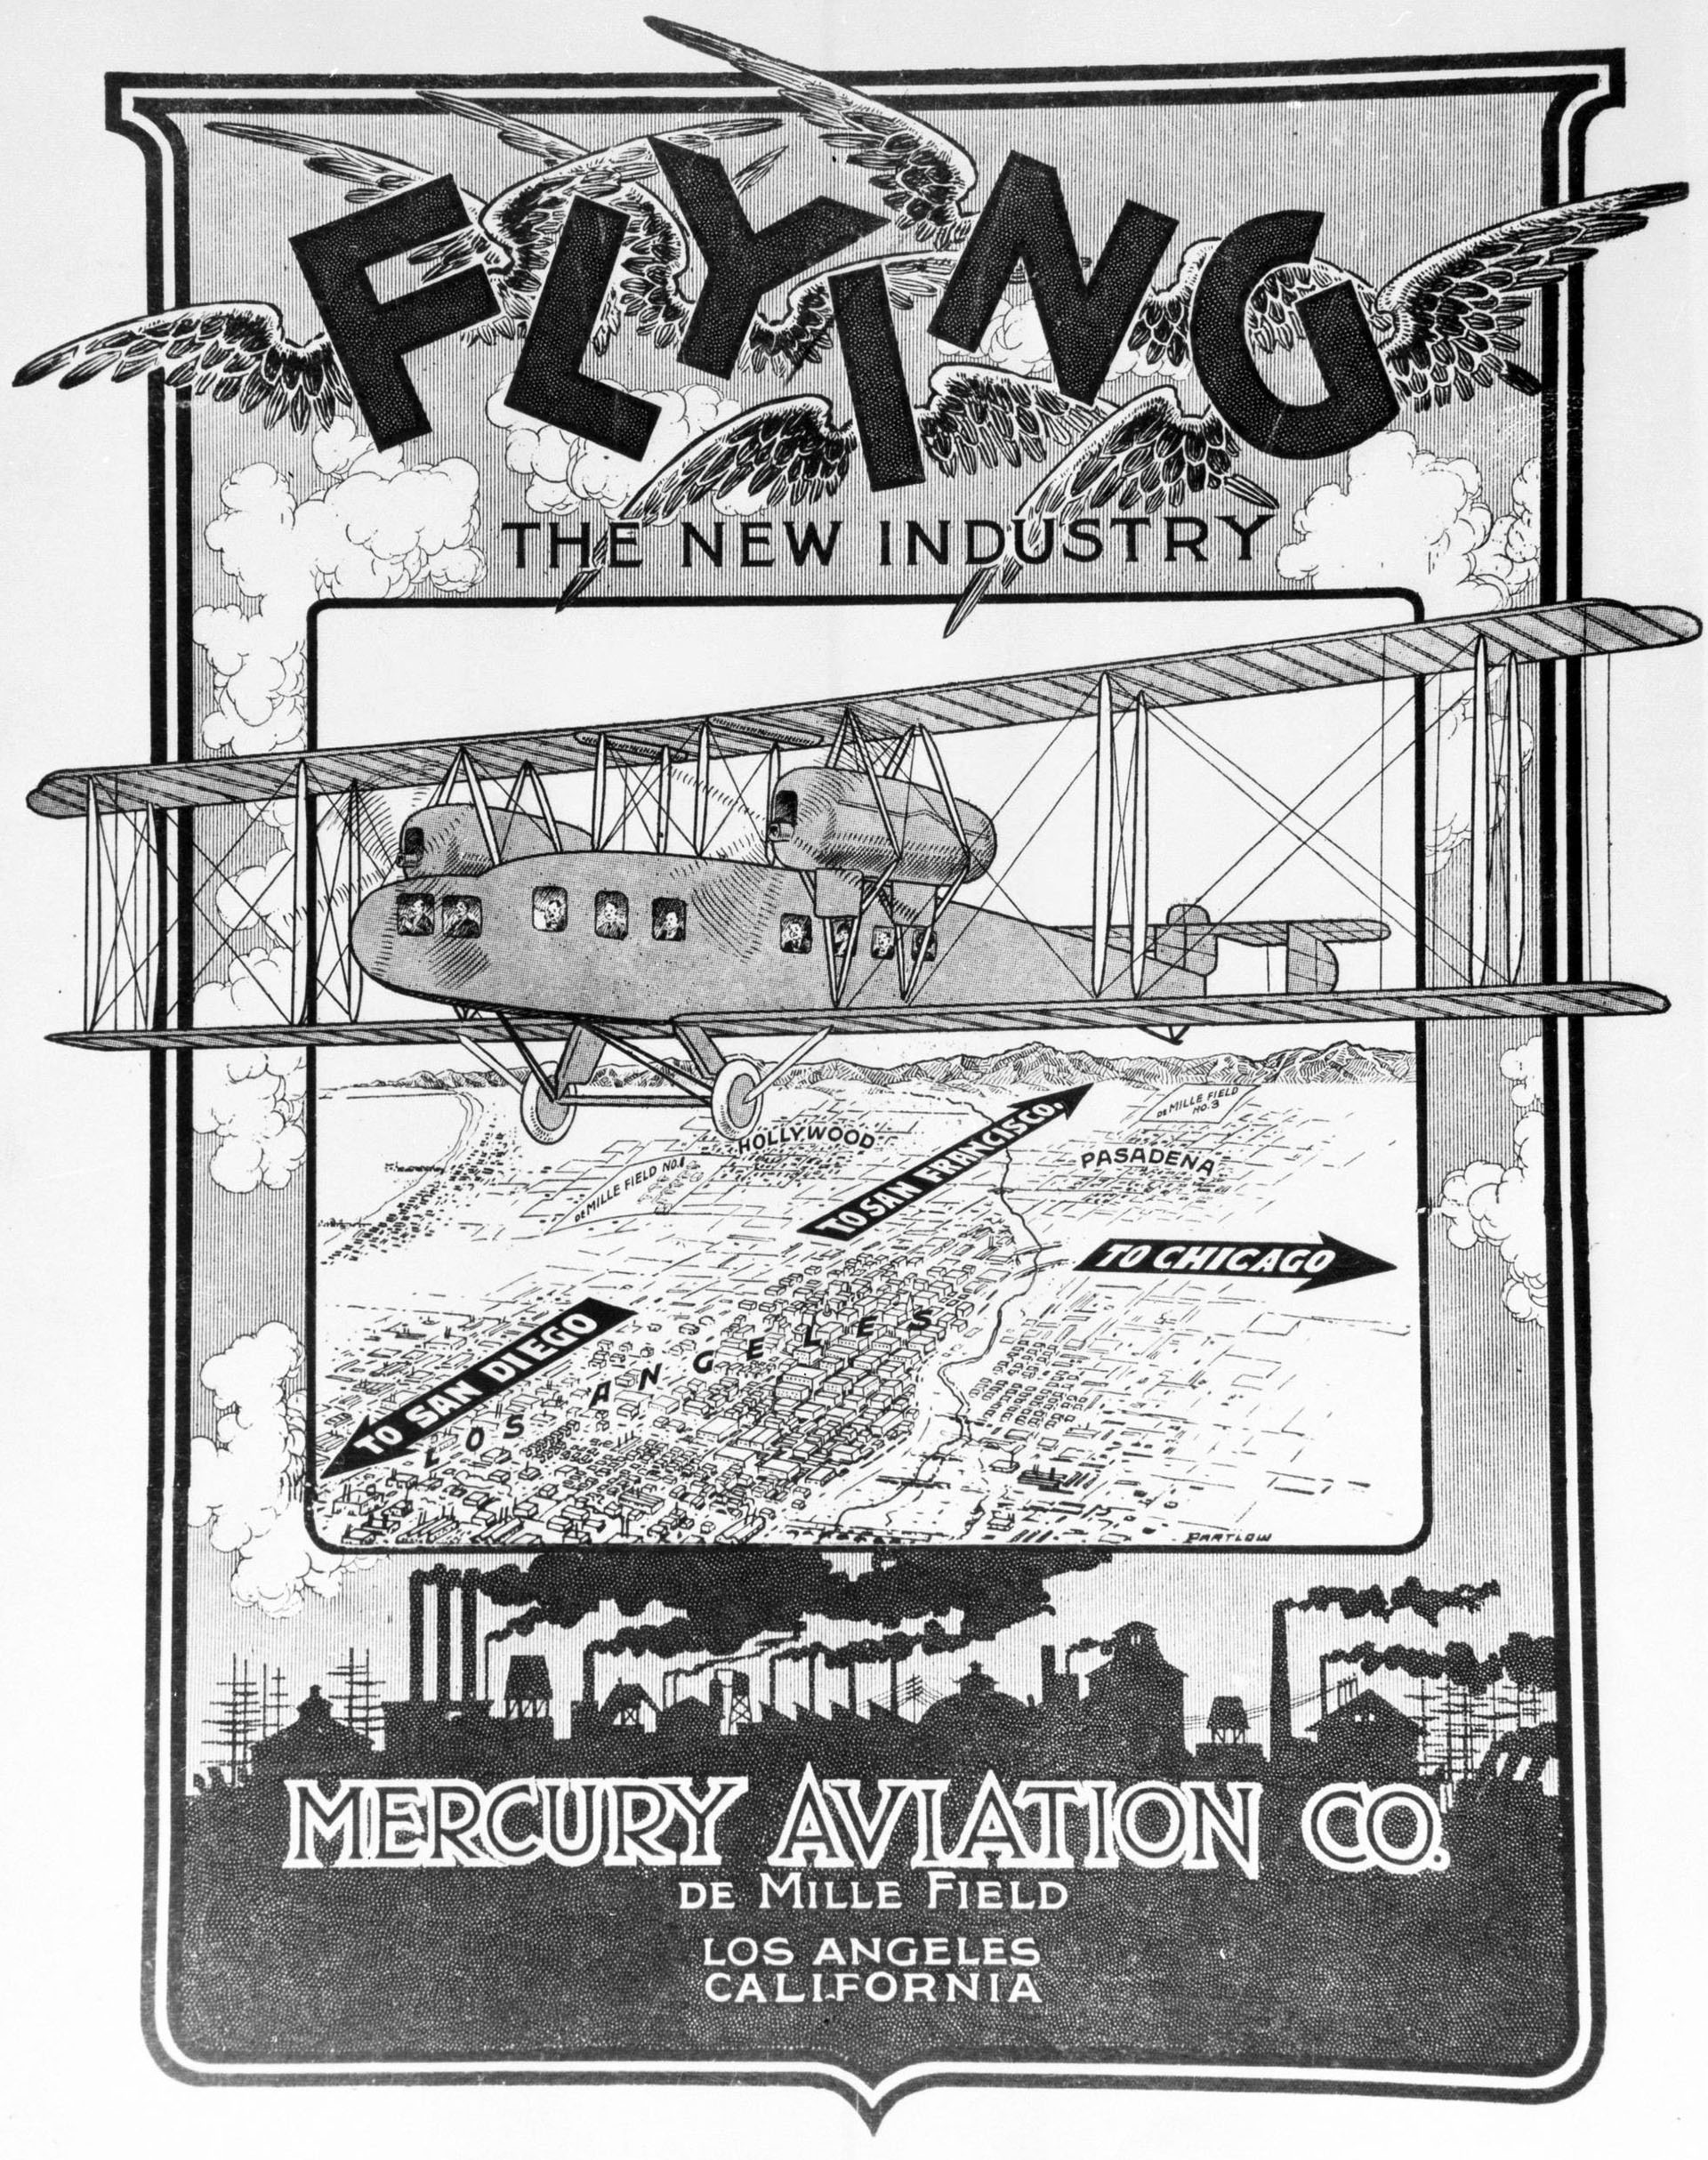 Advertisement for Mercury Aviation Company, located at DeMille Field, ca.1925